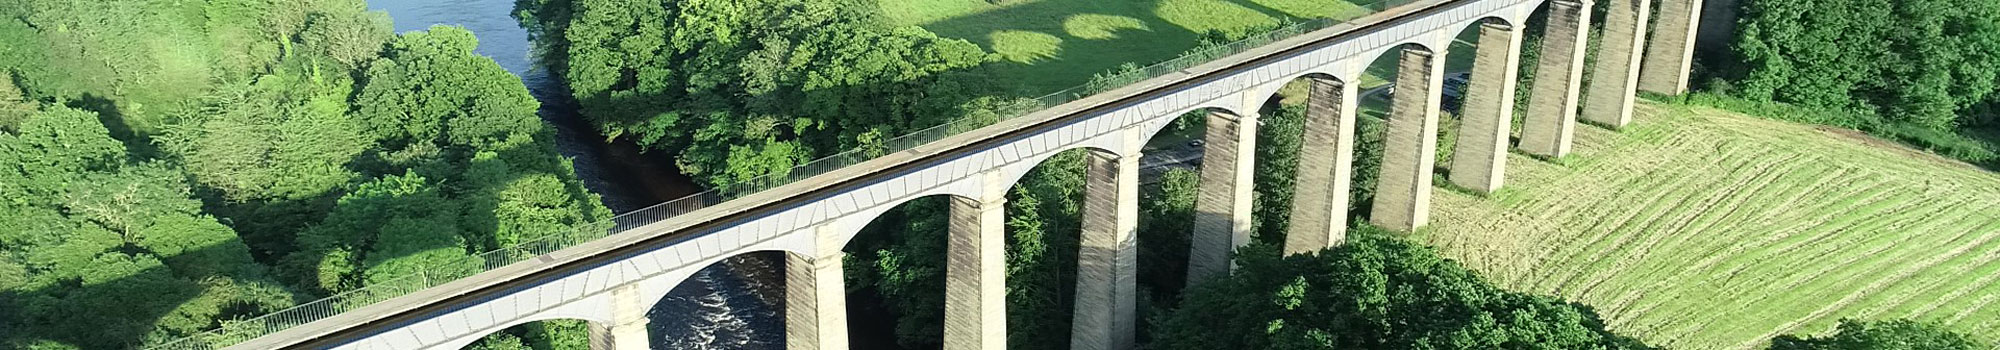 Drone footage of Pontcysyllte Aqueduct in Wrexham, North Wales